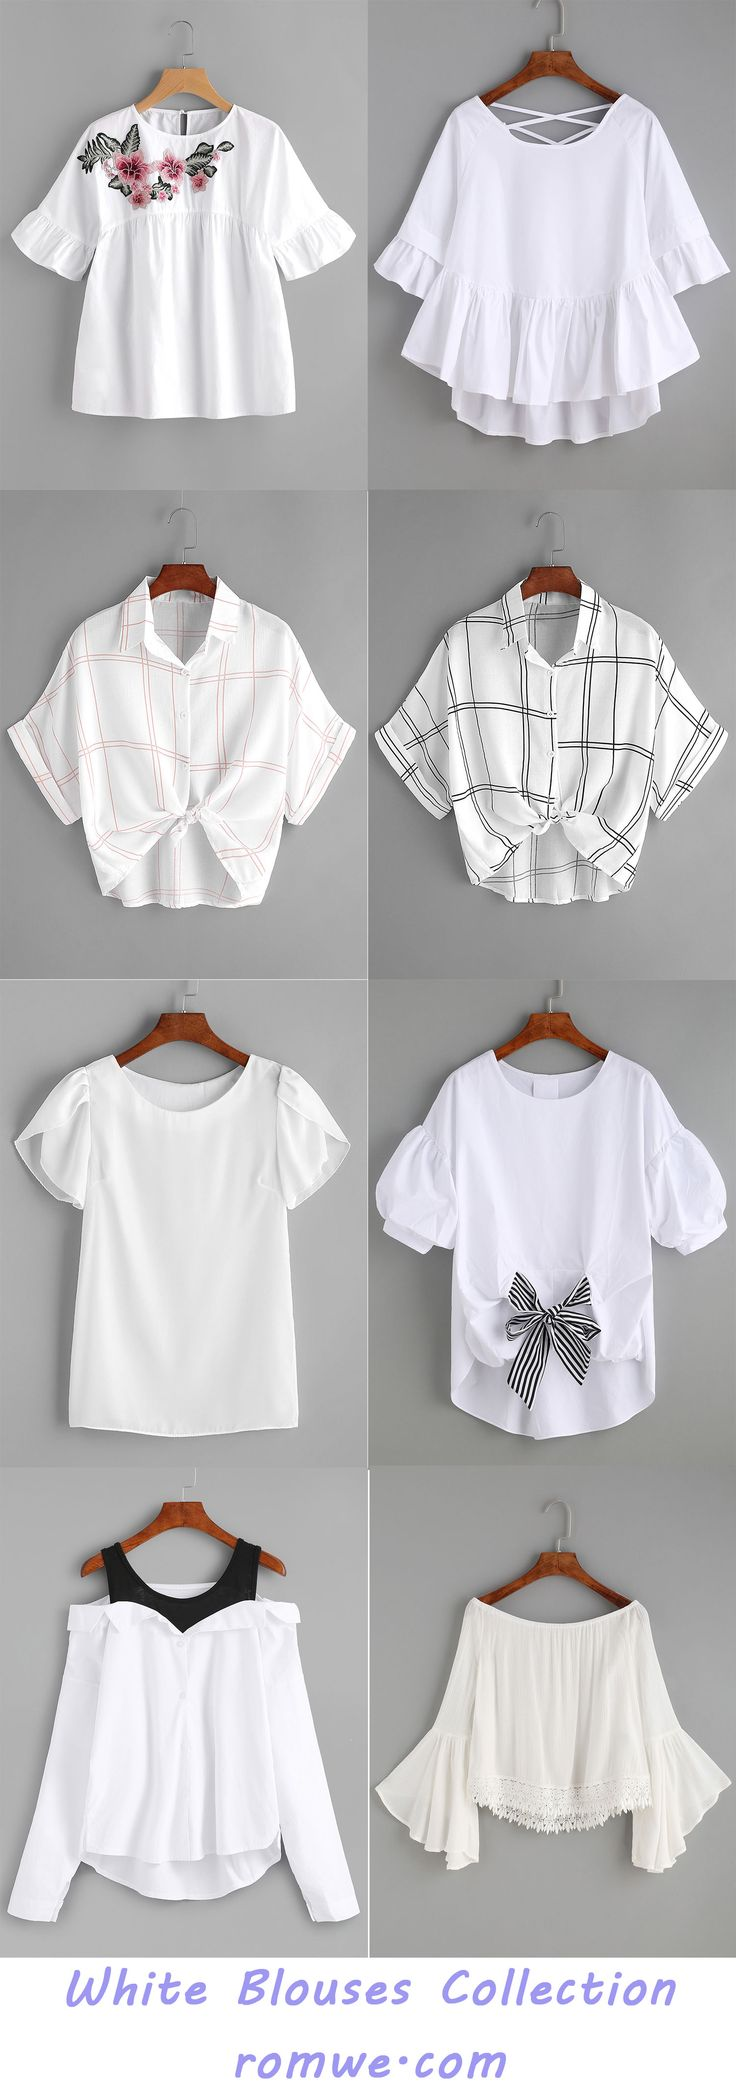 White Blouses Collection - romwe.com